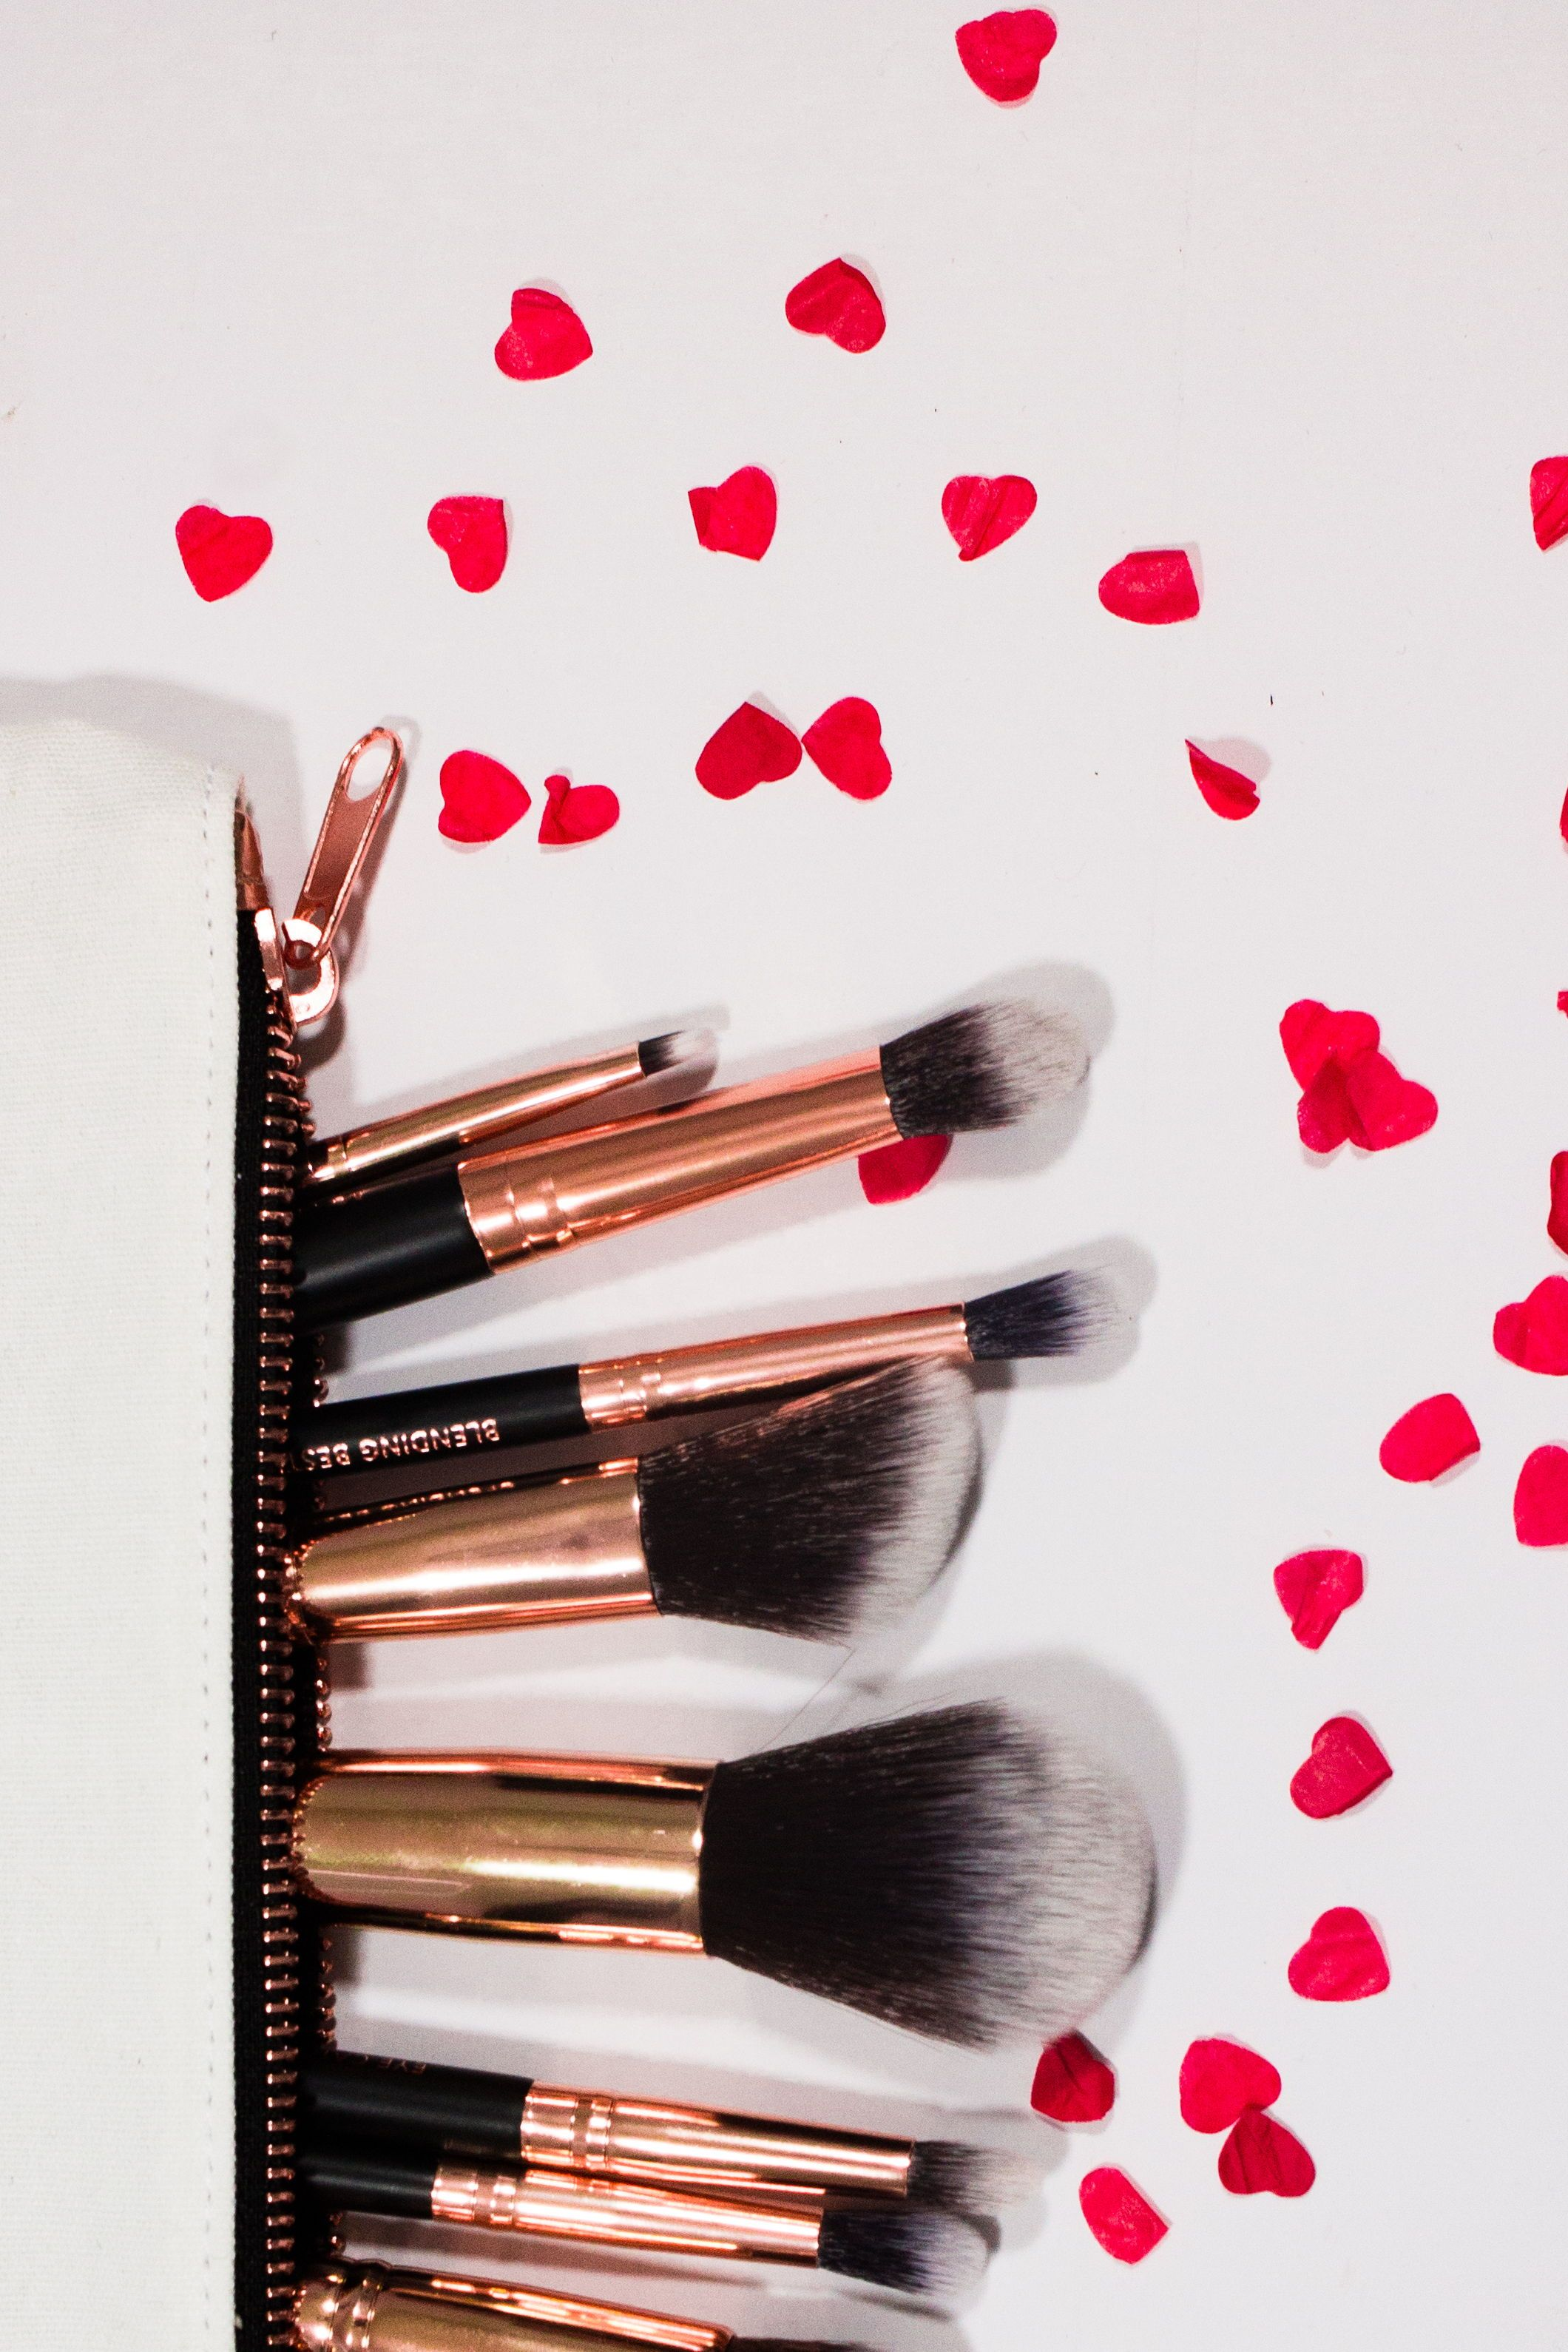 All I want for Valentine's Day is... vegan, cruelty free